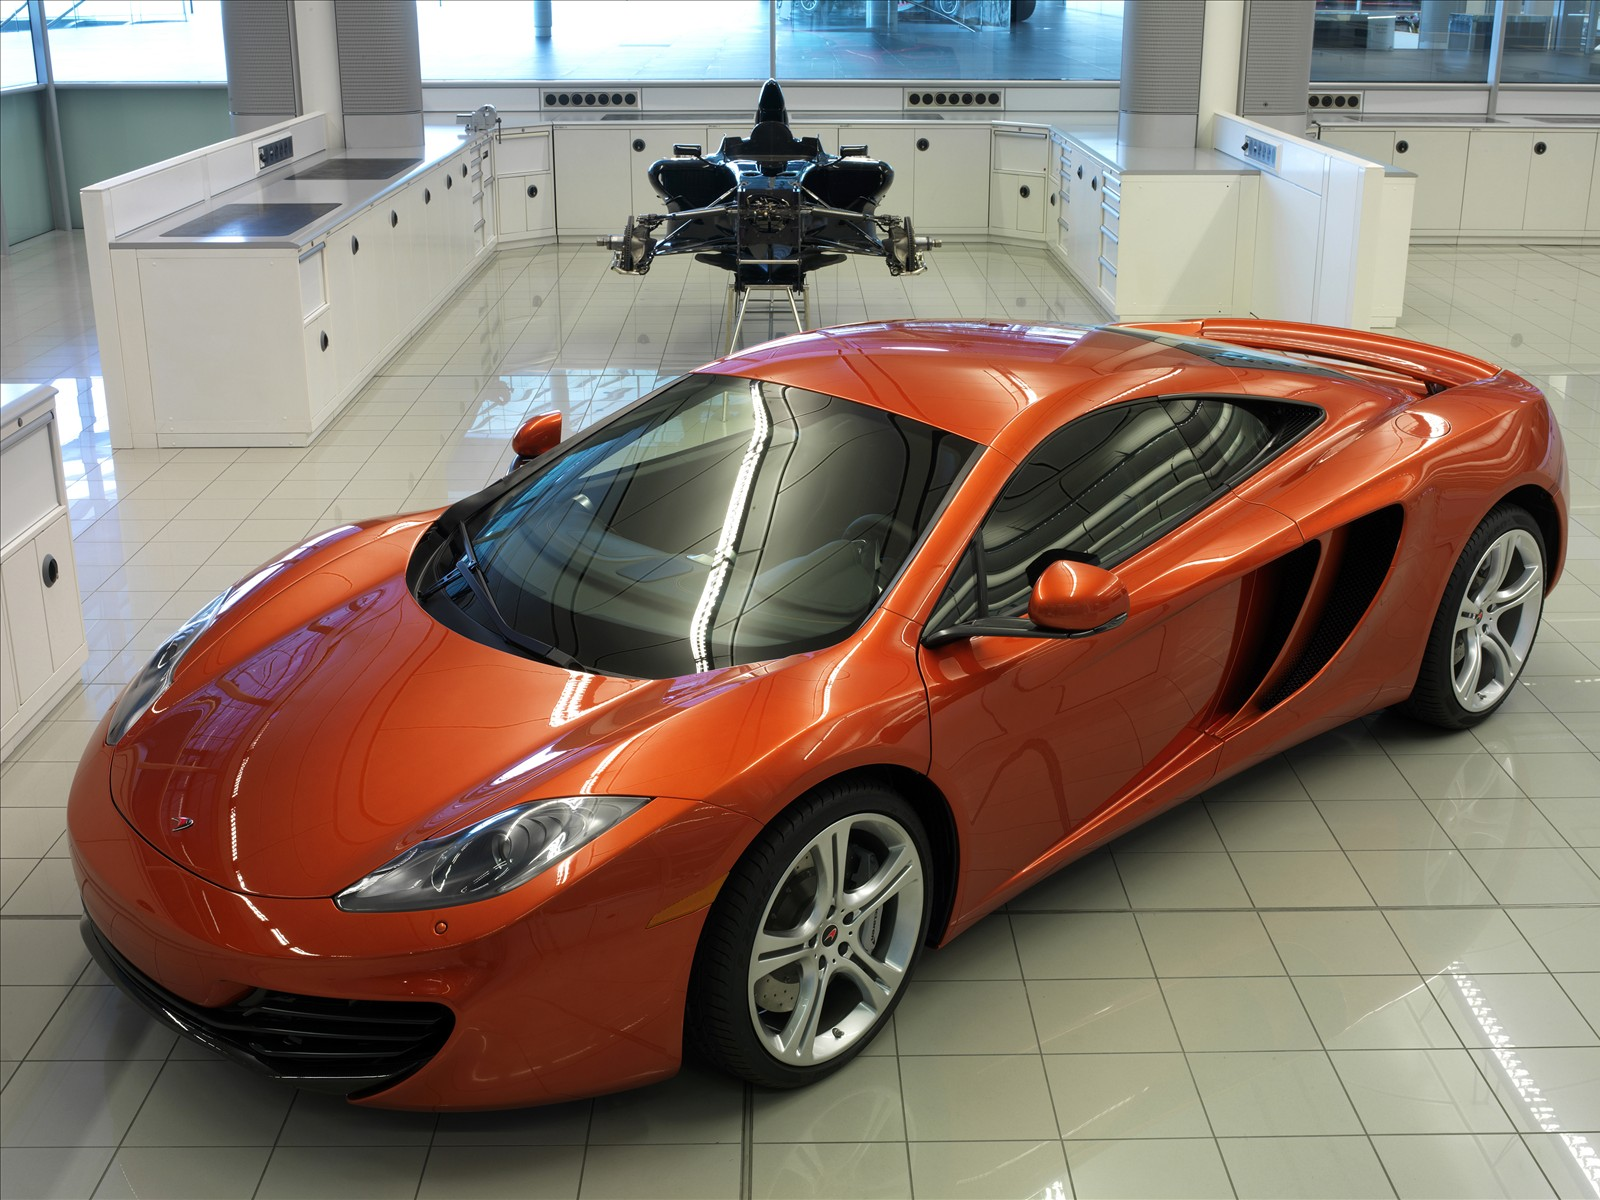 2011 McLaren MP4-12C showroom